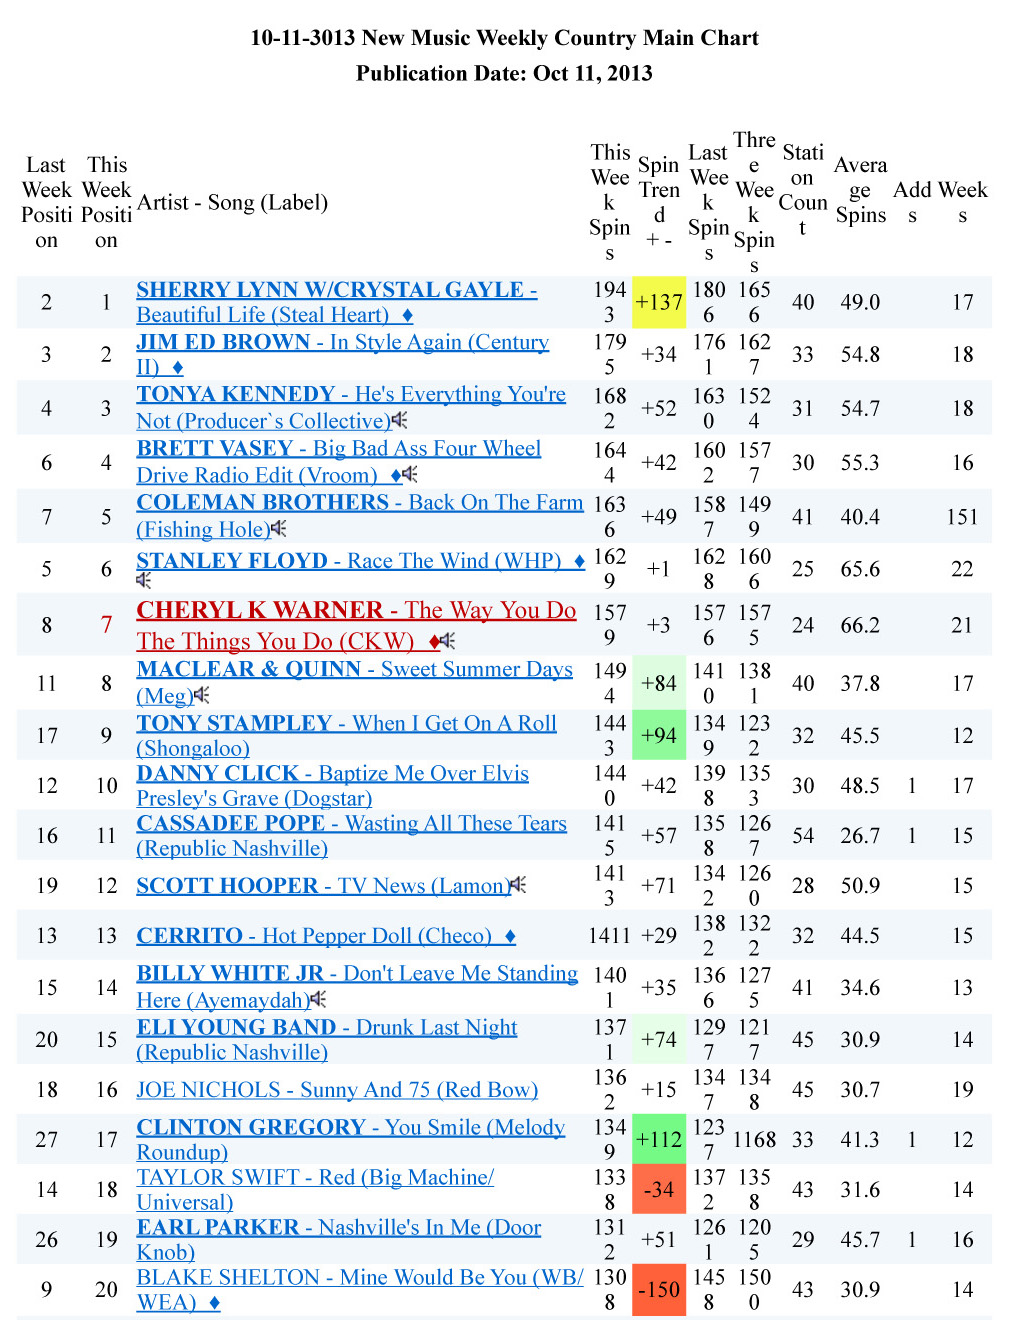 10-11-3013 NEW MUSIC WEEKLY COUNTRY MAIN CHART